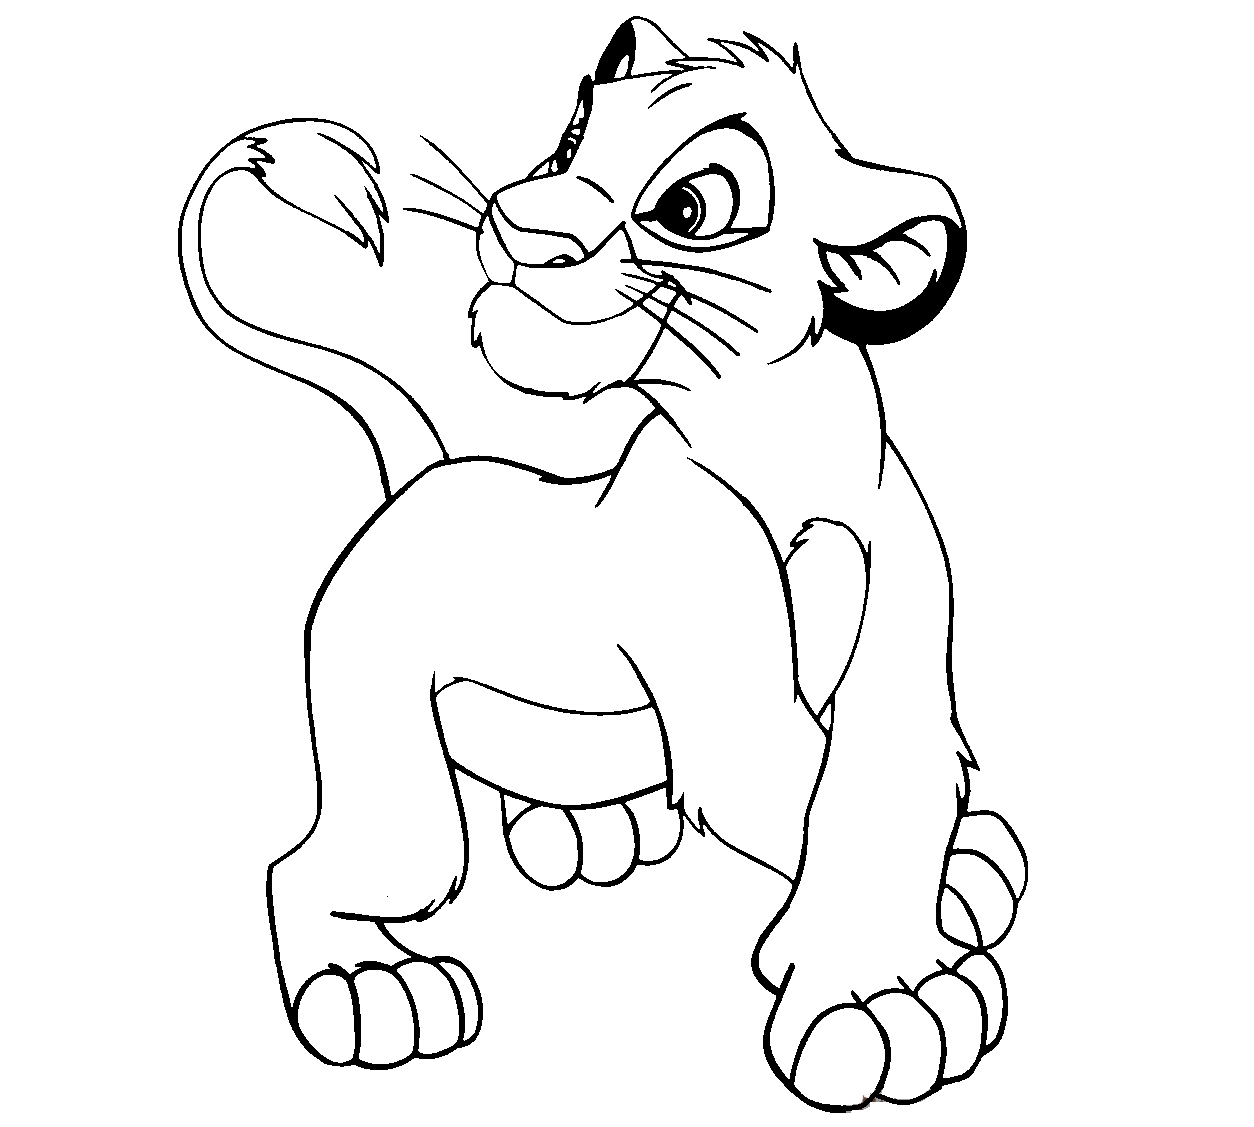 lion color pages - colour drawing free wallpaper disney cartoon the lion